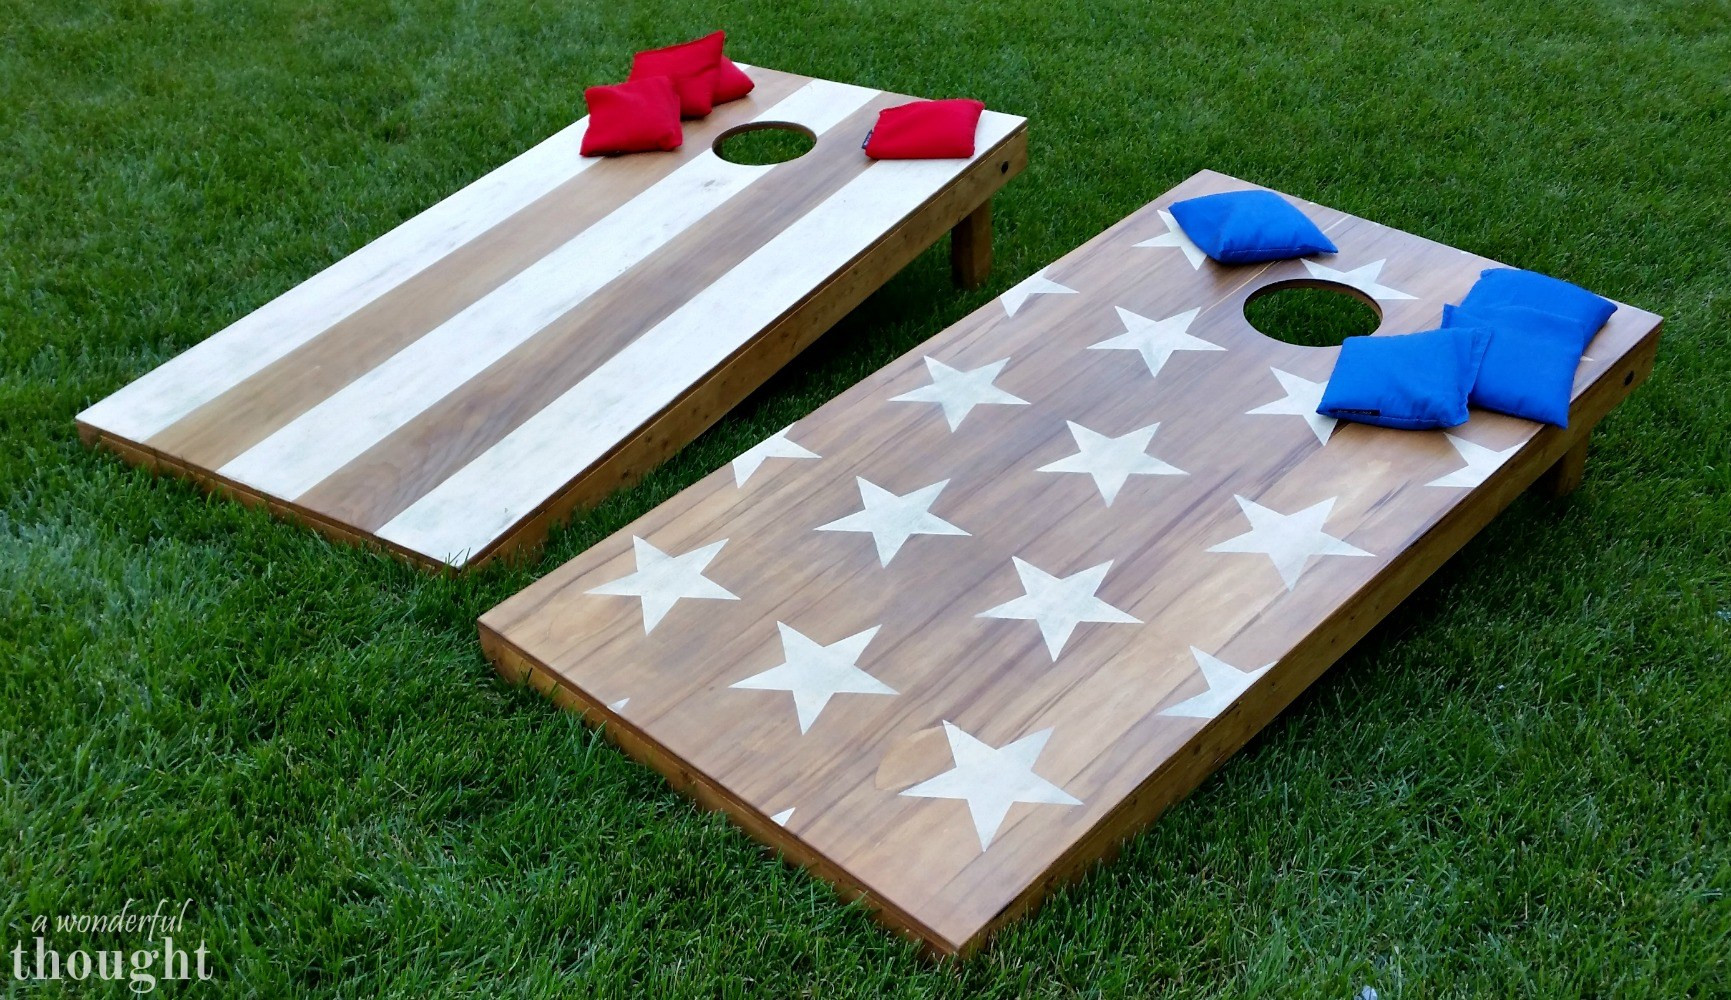 Best ideas about Yard Games DIY . Save or Pin Yard Games 10 Giant Options You Can DIY from Yahtzee to Now.